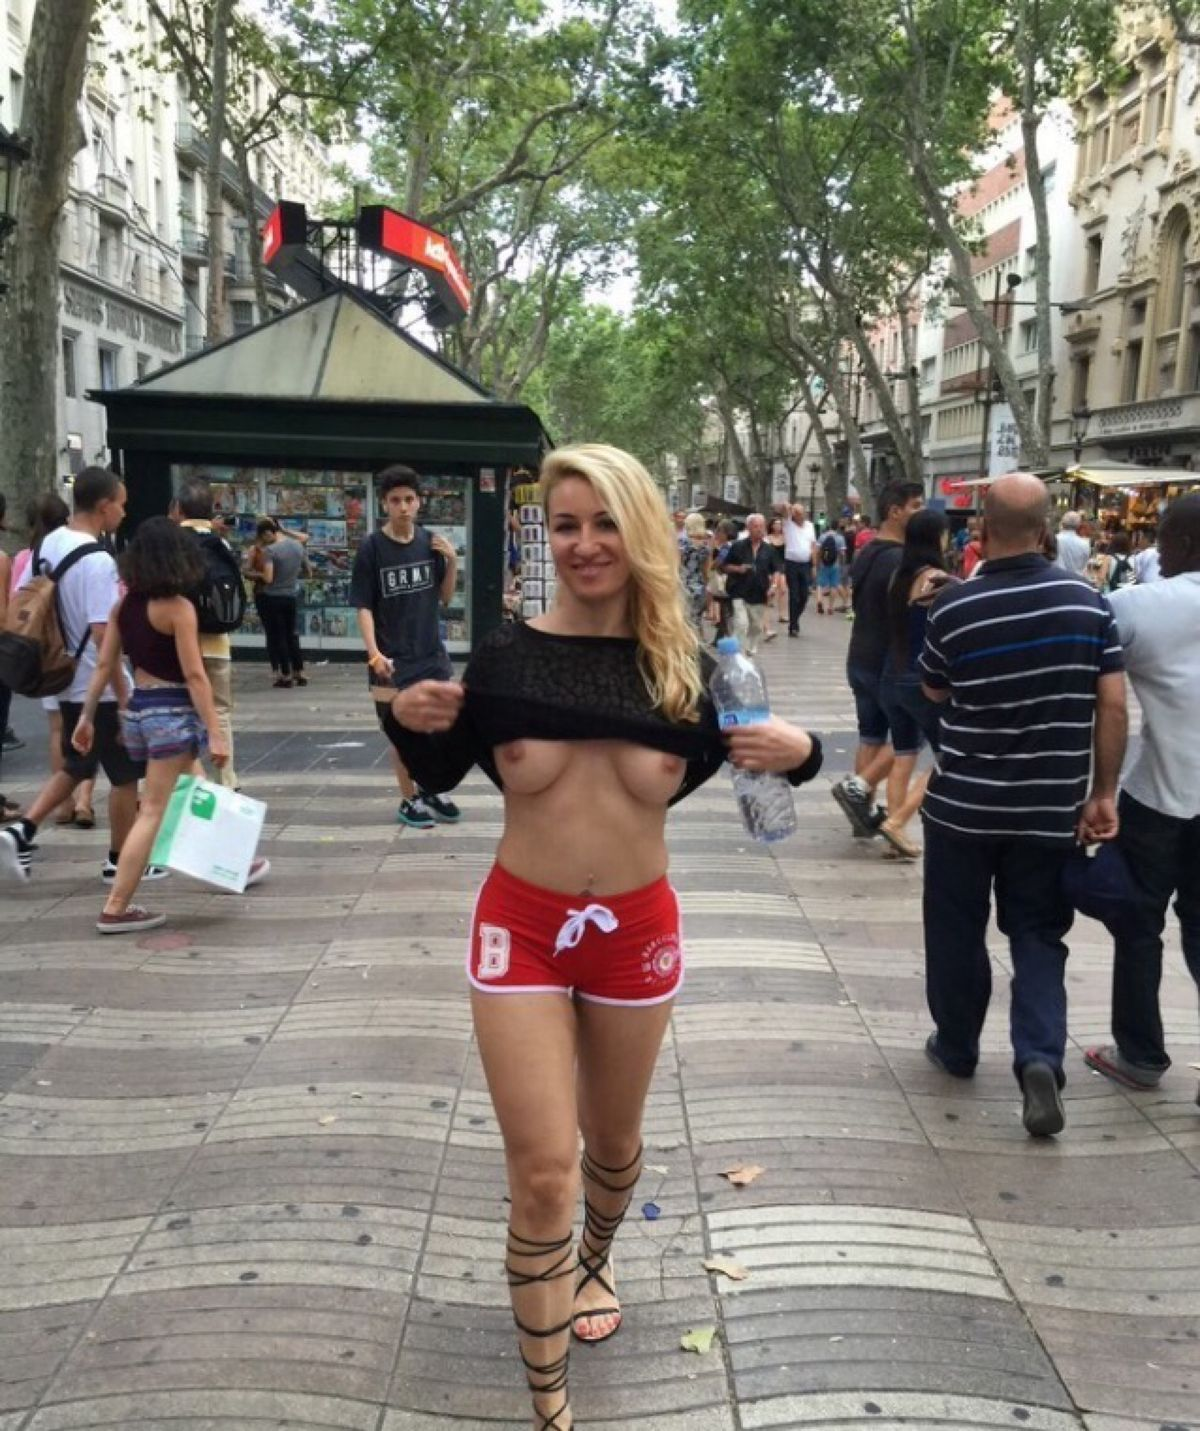 Girl Flashing People